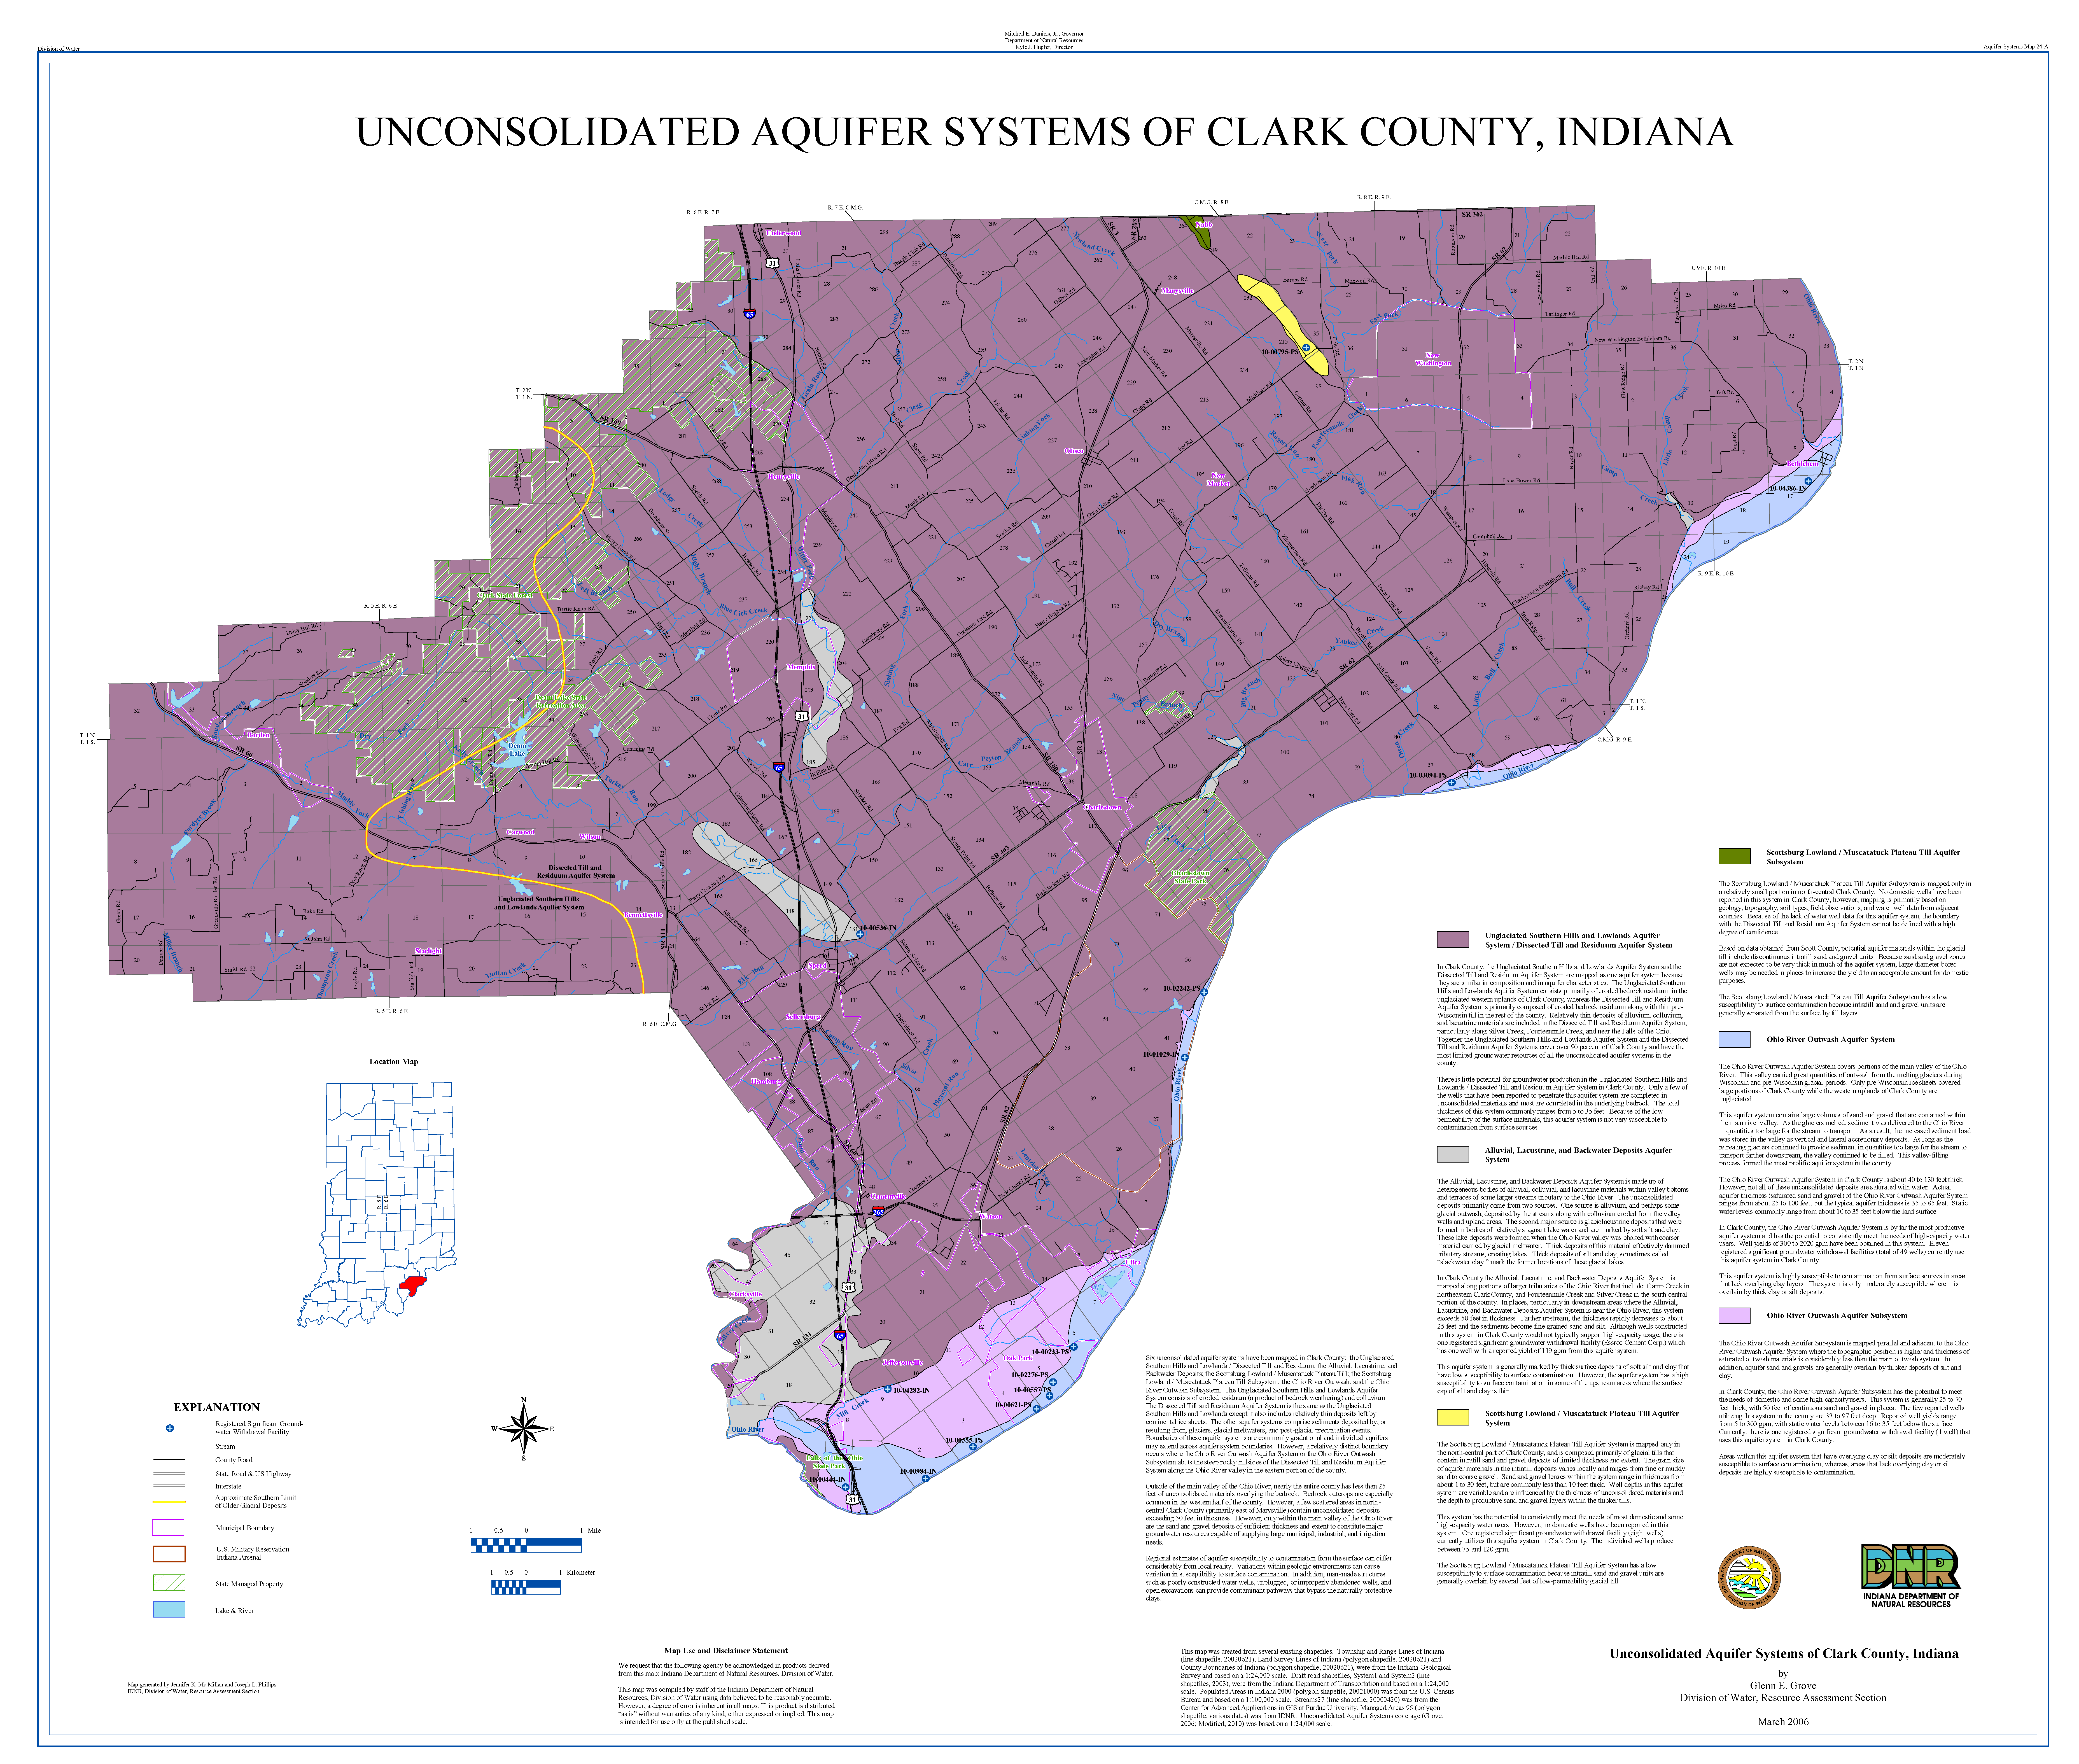 DNR: Aquifer Systems Maps 24-A and 24-B: Unconsolidated and ... on las vegas valley map, william clark map, clark island map, clark school map, clark sd map, north las vegas map, clark colorado map, las vegas township map, nevada map, sandy valley map, ohio map,